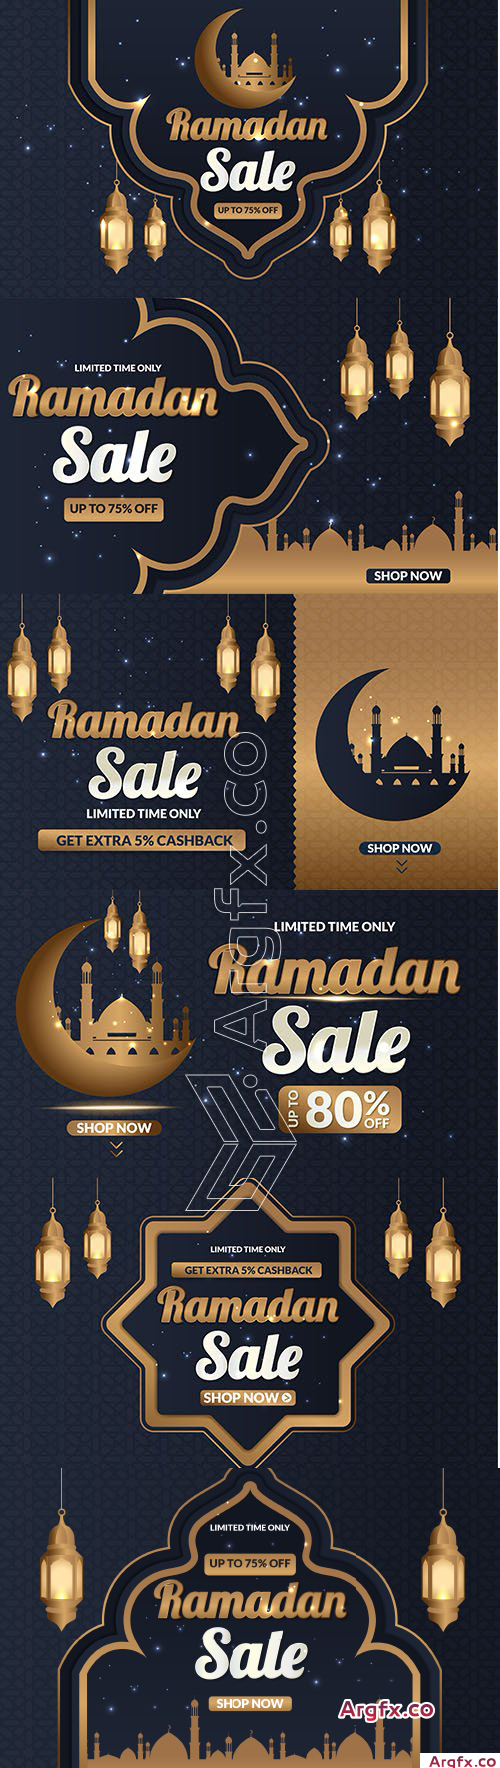 Ramadan Sale Banner Social Media Post Set